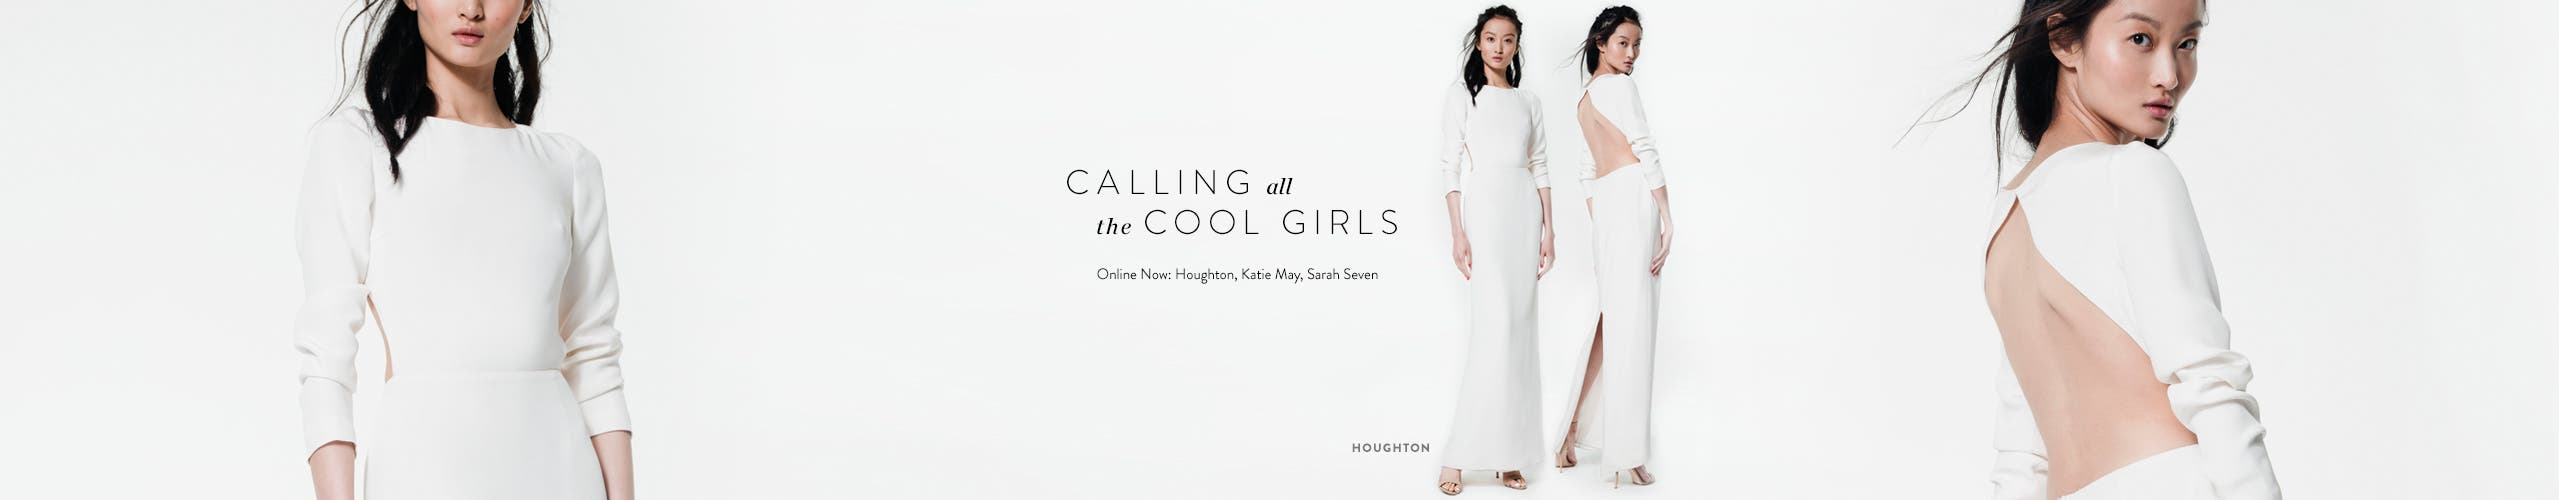 Calling all the cool girls. Edgy new wedding gowns from Houghton, Katie May and Sarah Seven.